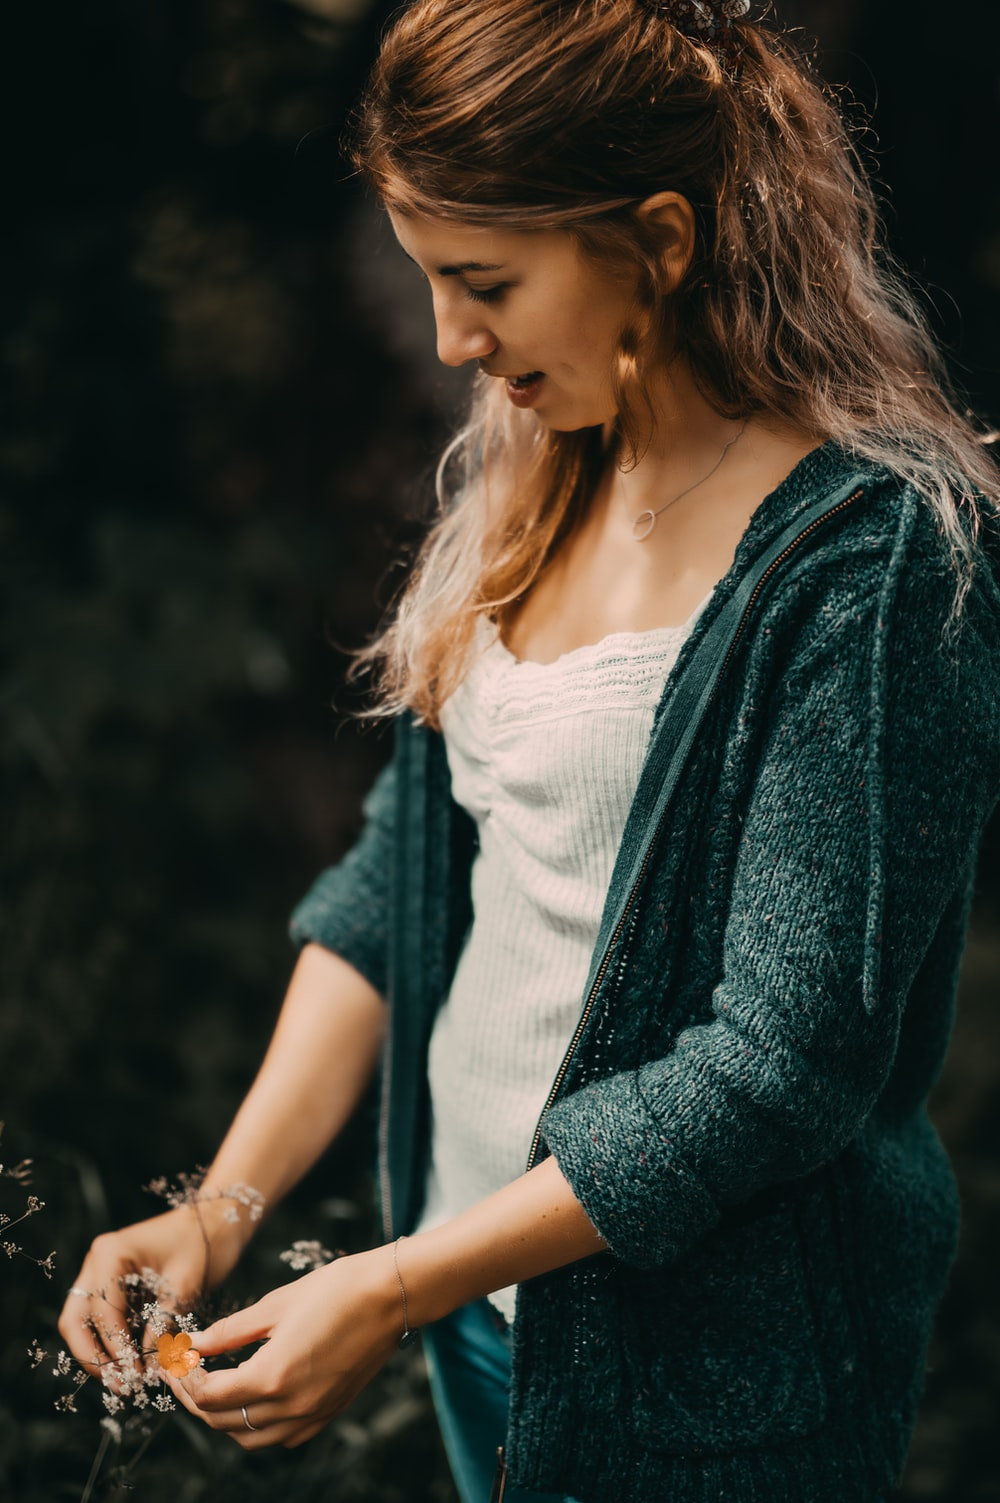 woman in white tank top and green cardigan